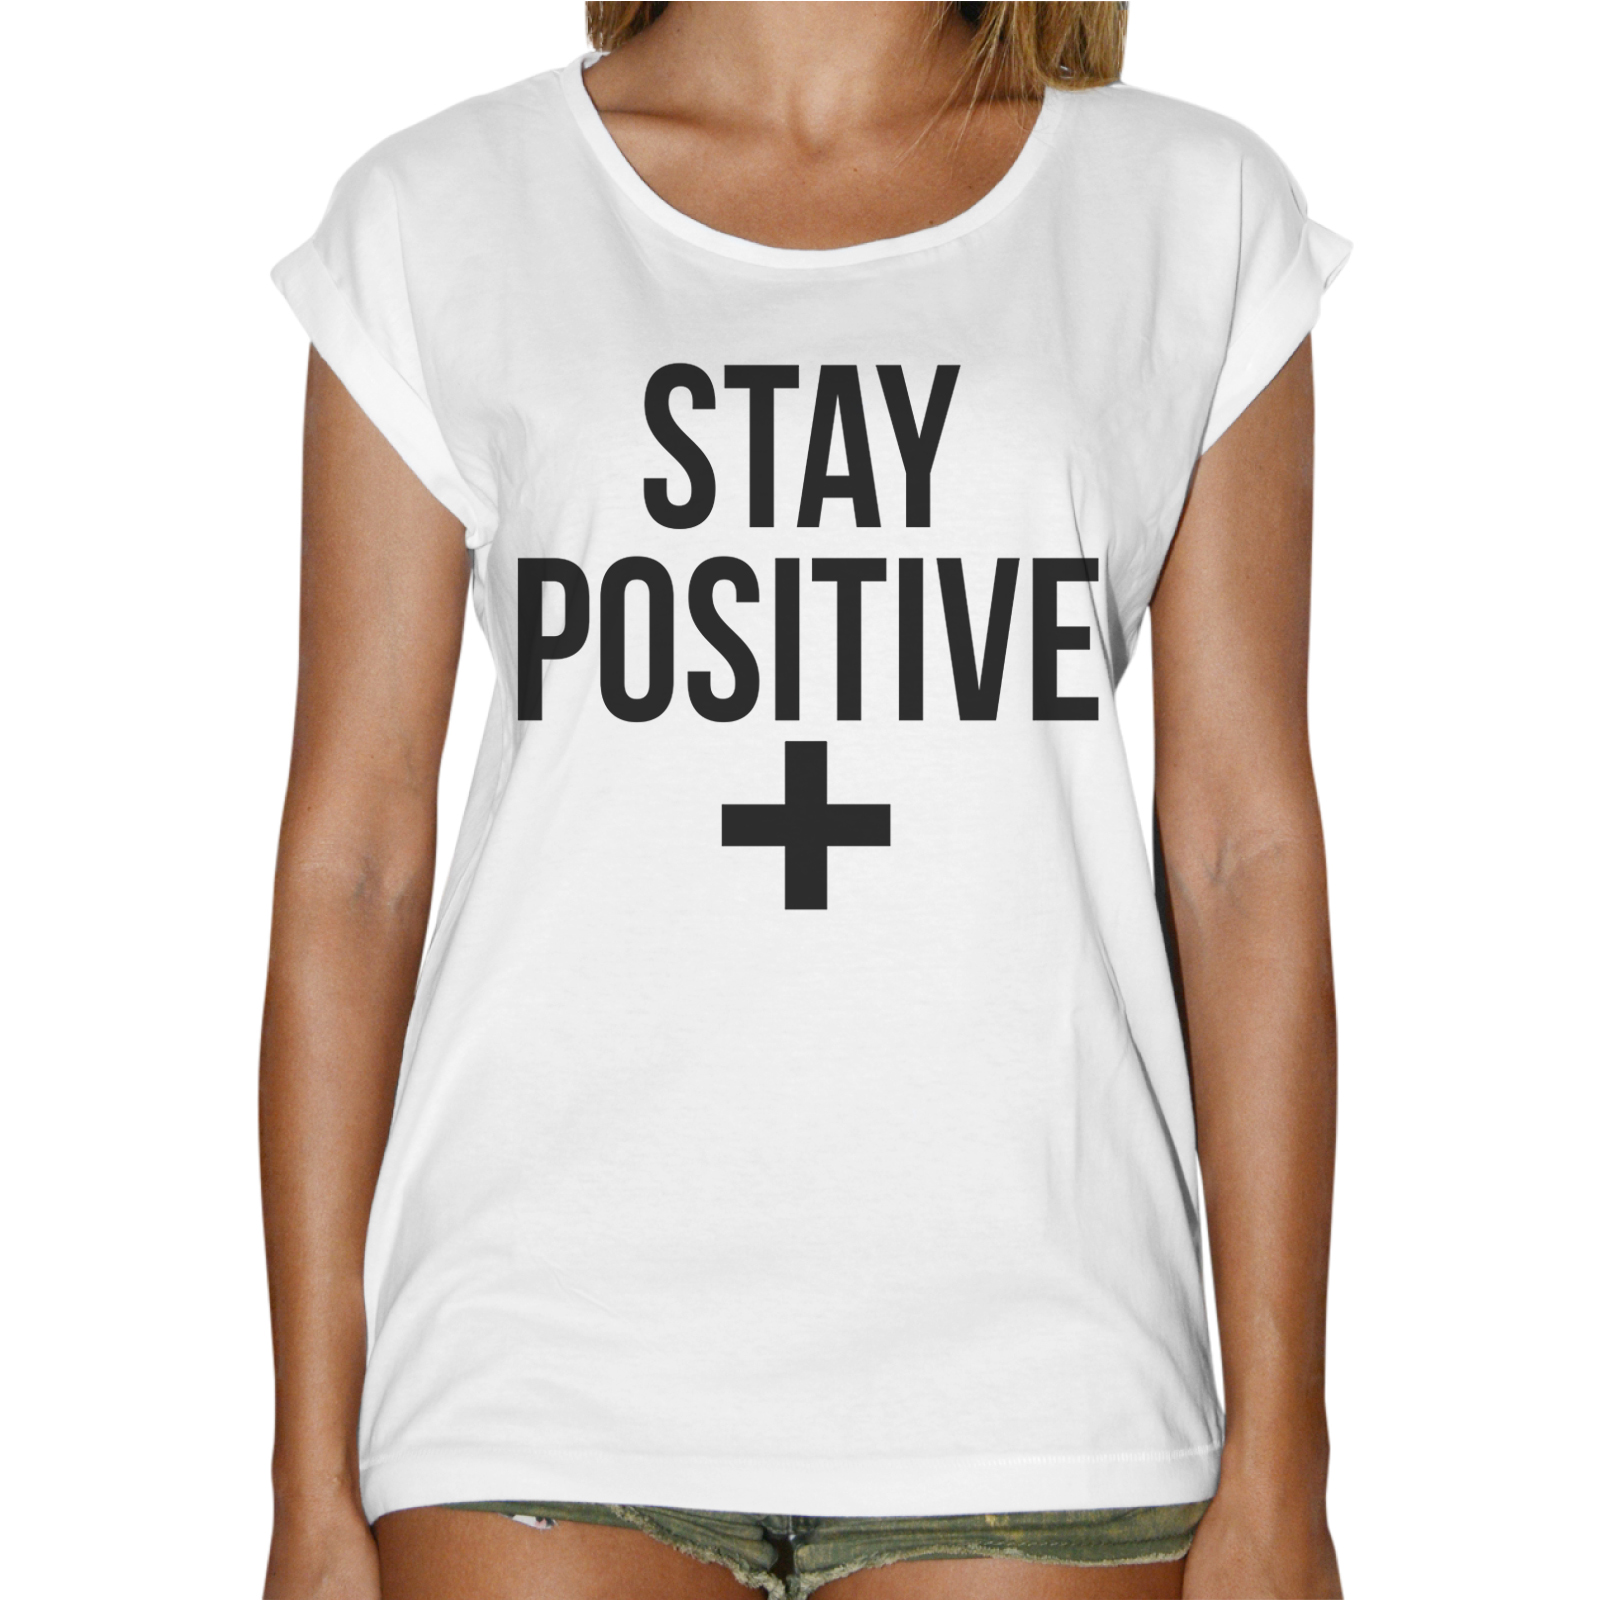 T-Shirt Donna Fashion STAY POSITIVE